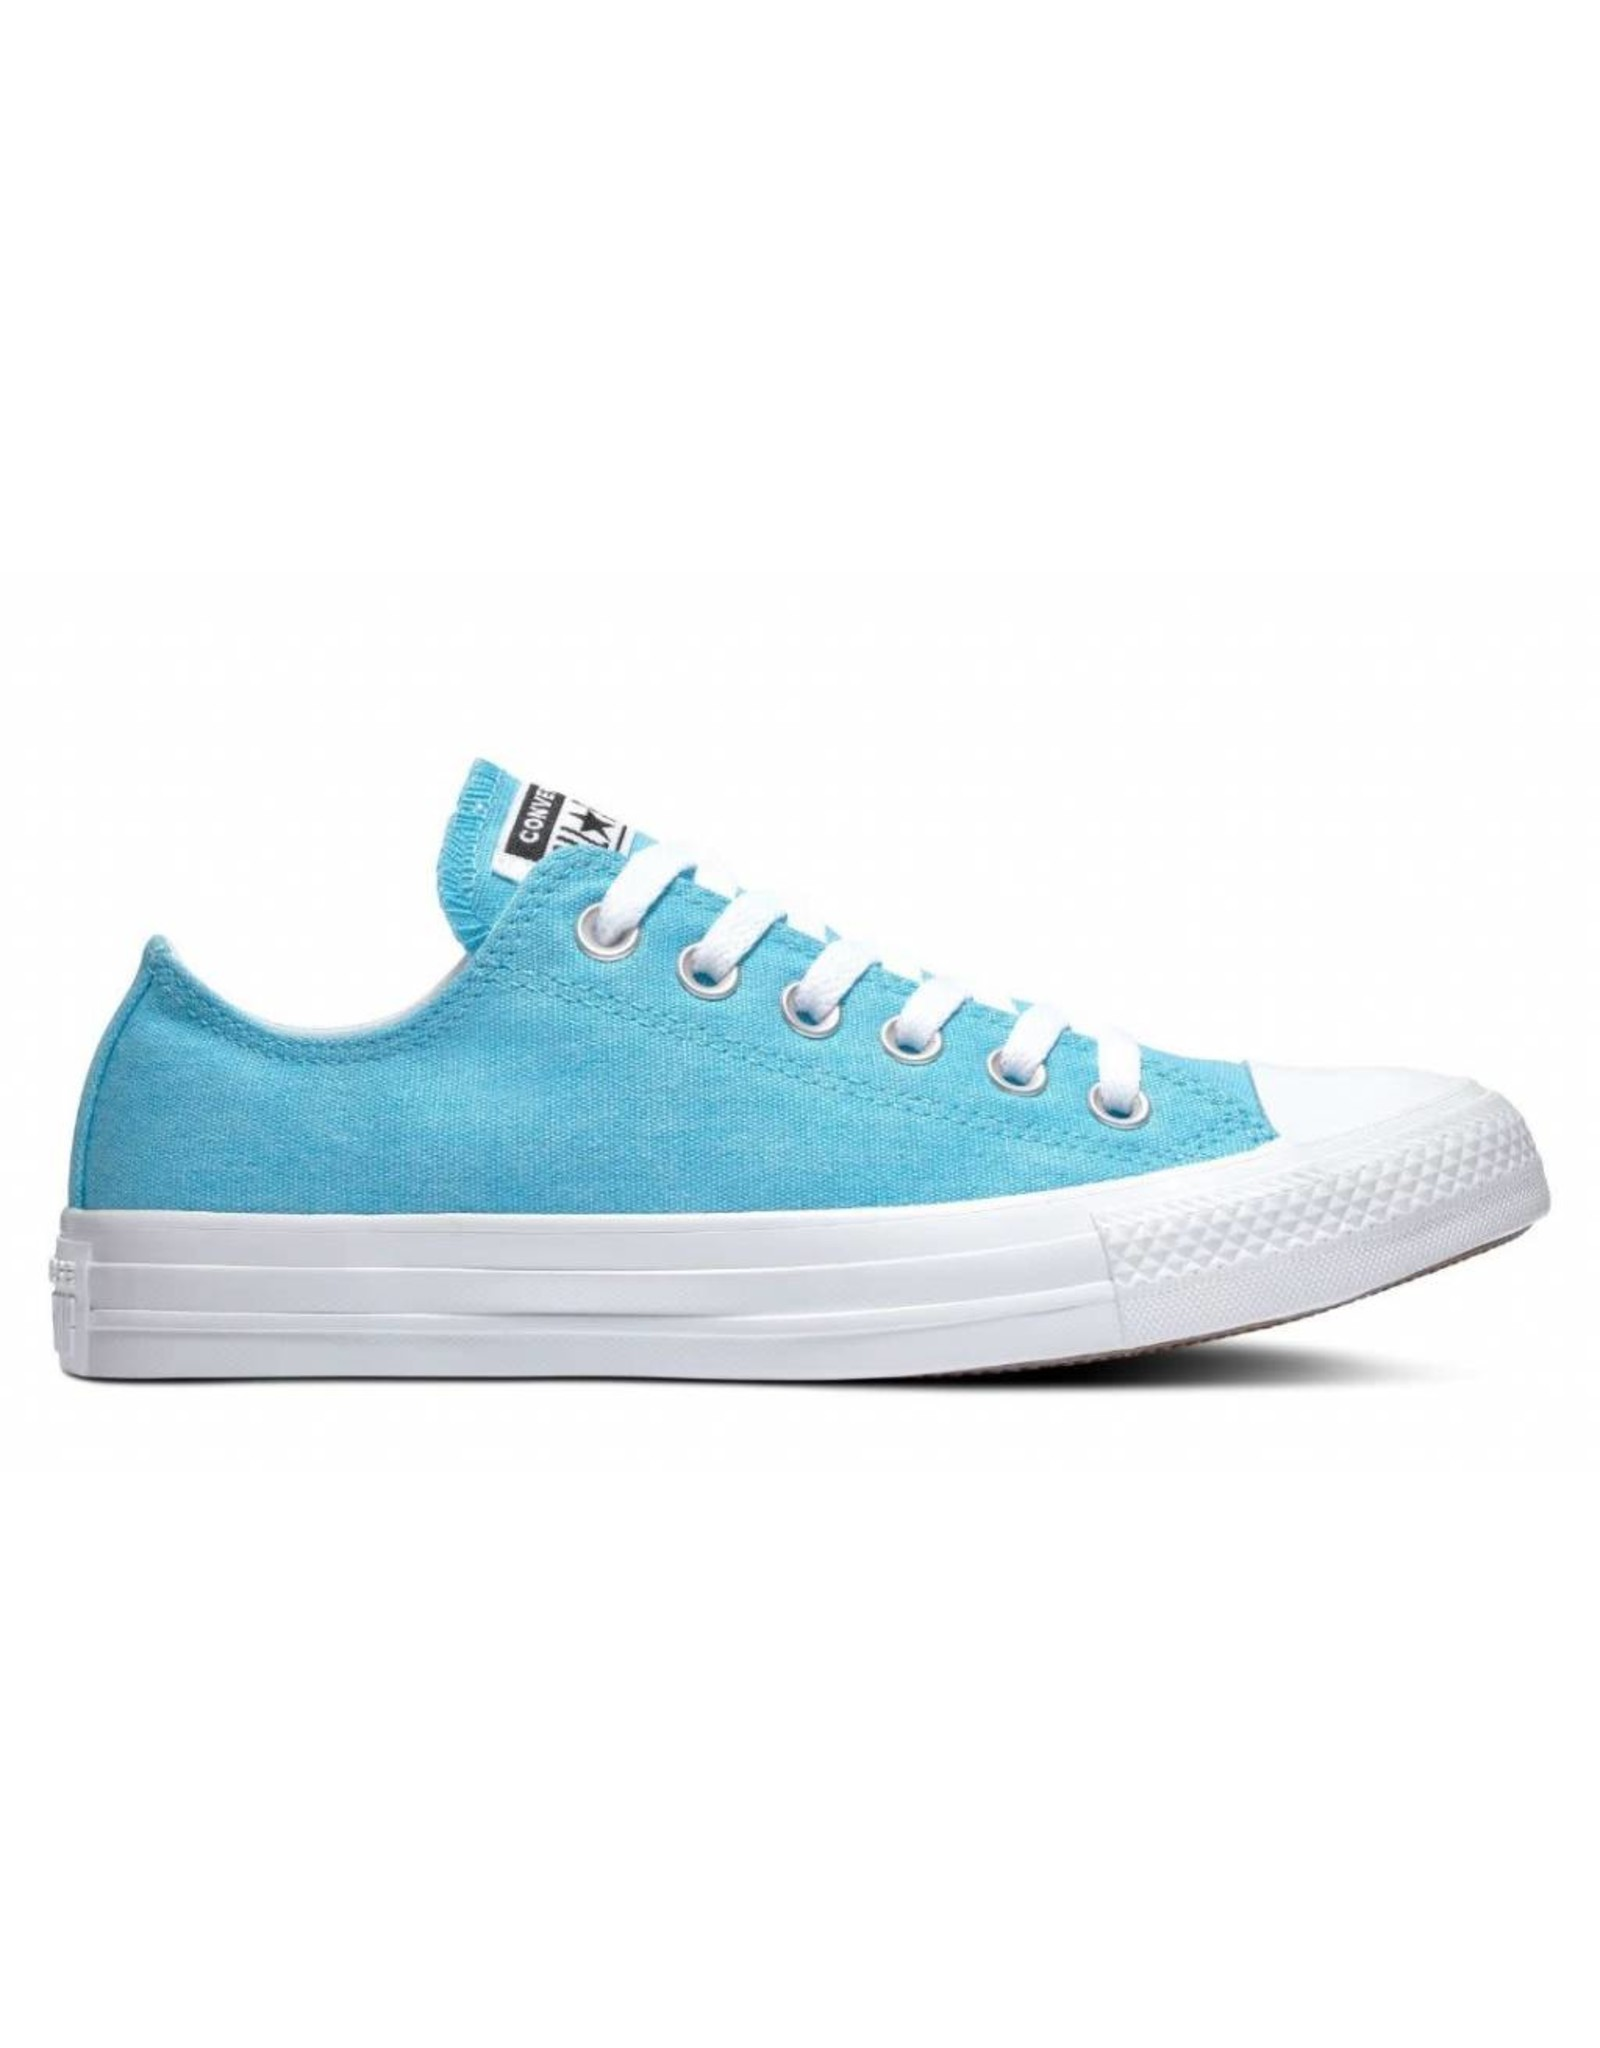 CONVERSE CHUCK TAYLOR ALL STAR OX GNARLY BLUE/WHITE/WHITE C13GN-163182C